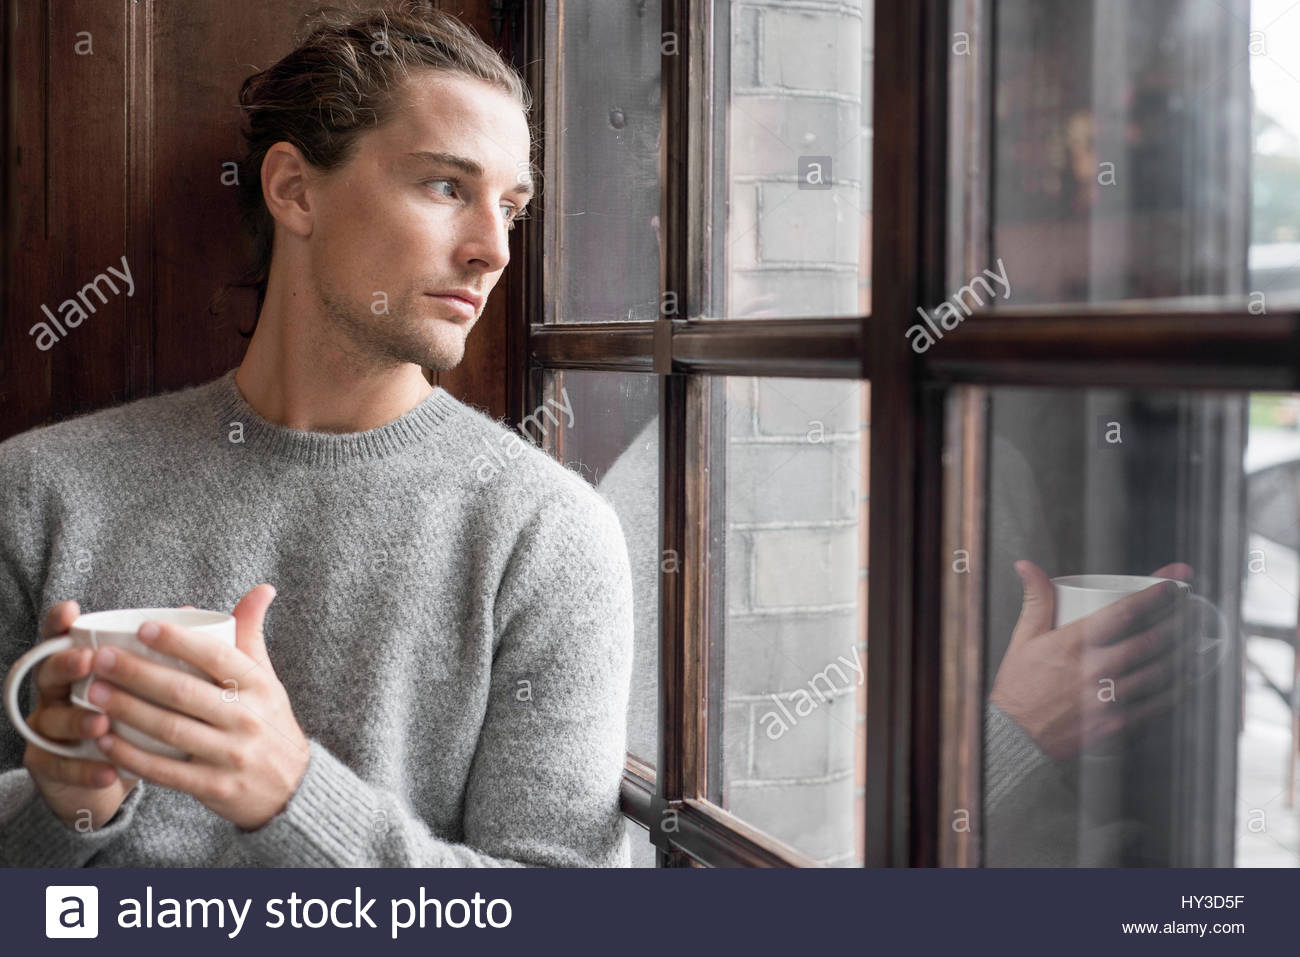 Sweden, Man holding mug and looking through window - Stock Image